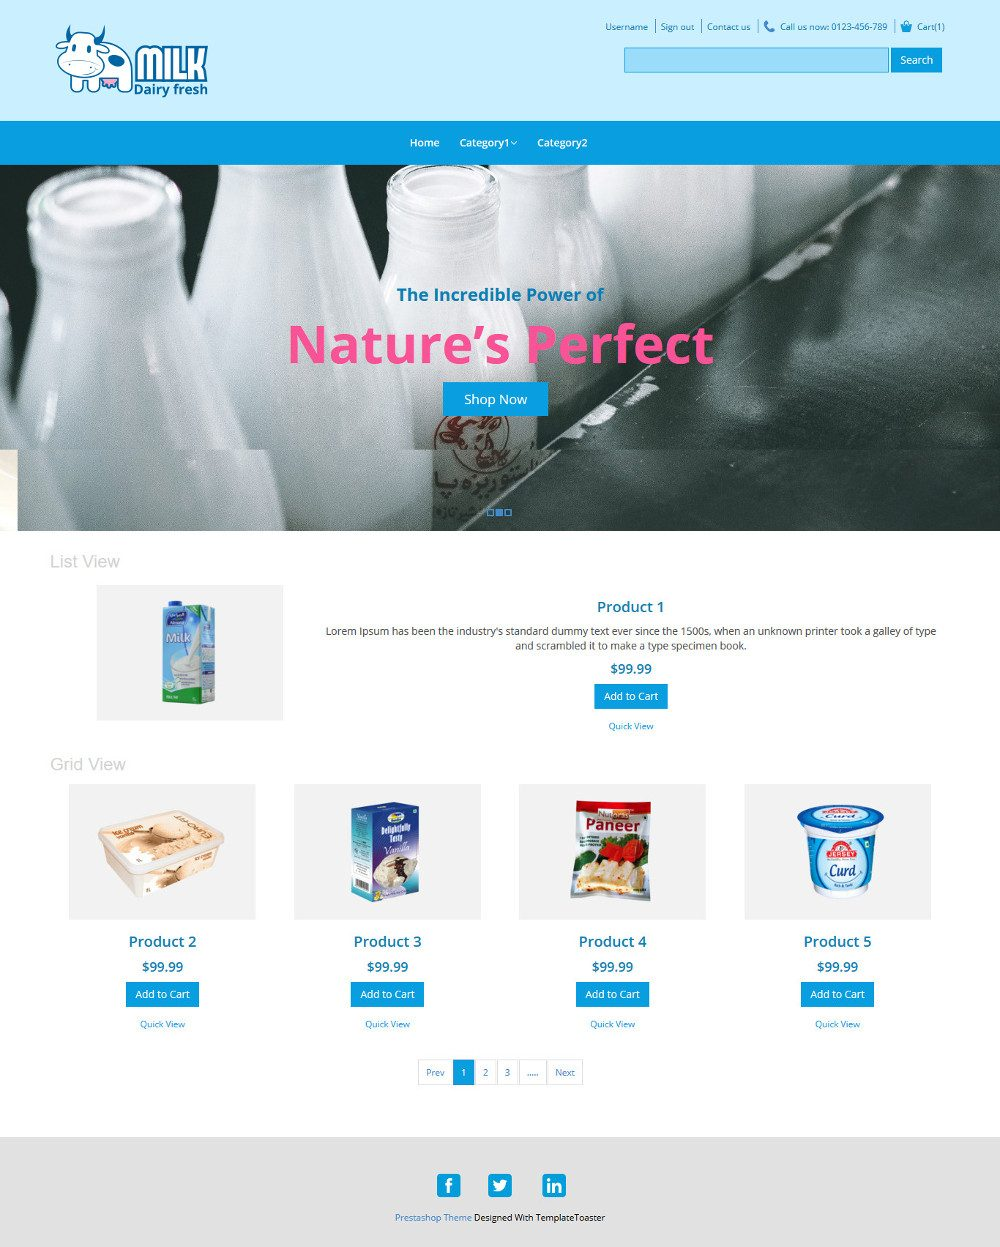 Milk Dairy Fresh Dairy Products OpenCart Theme